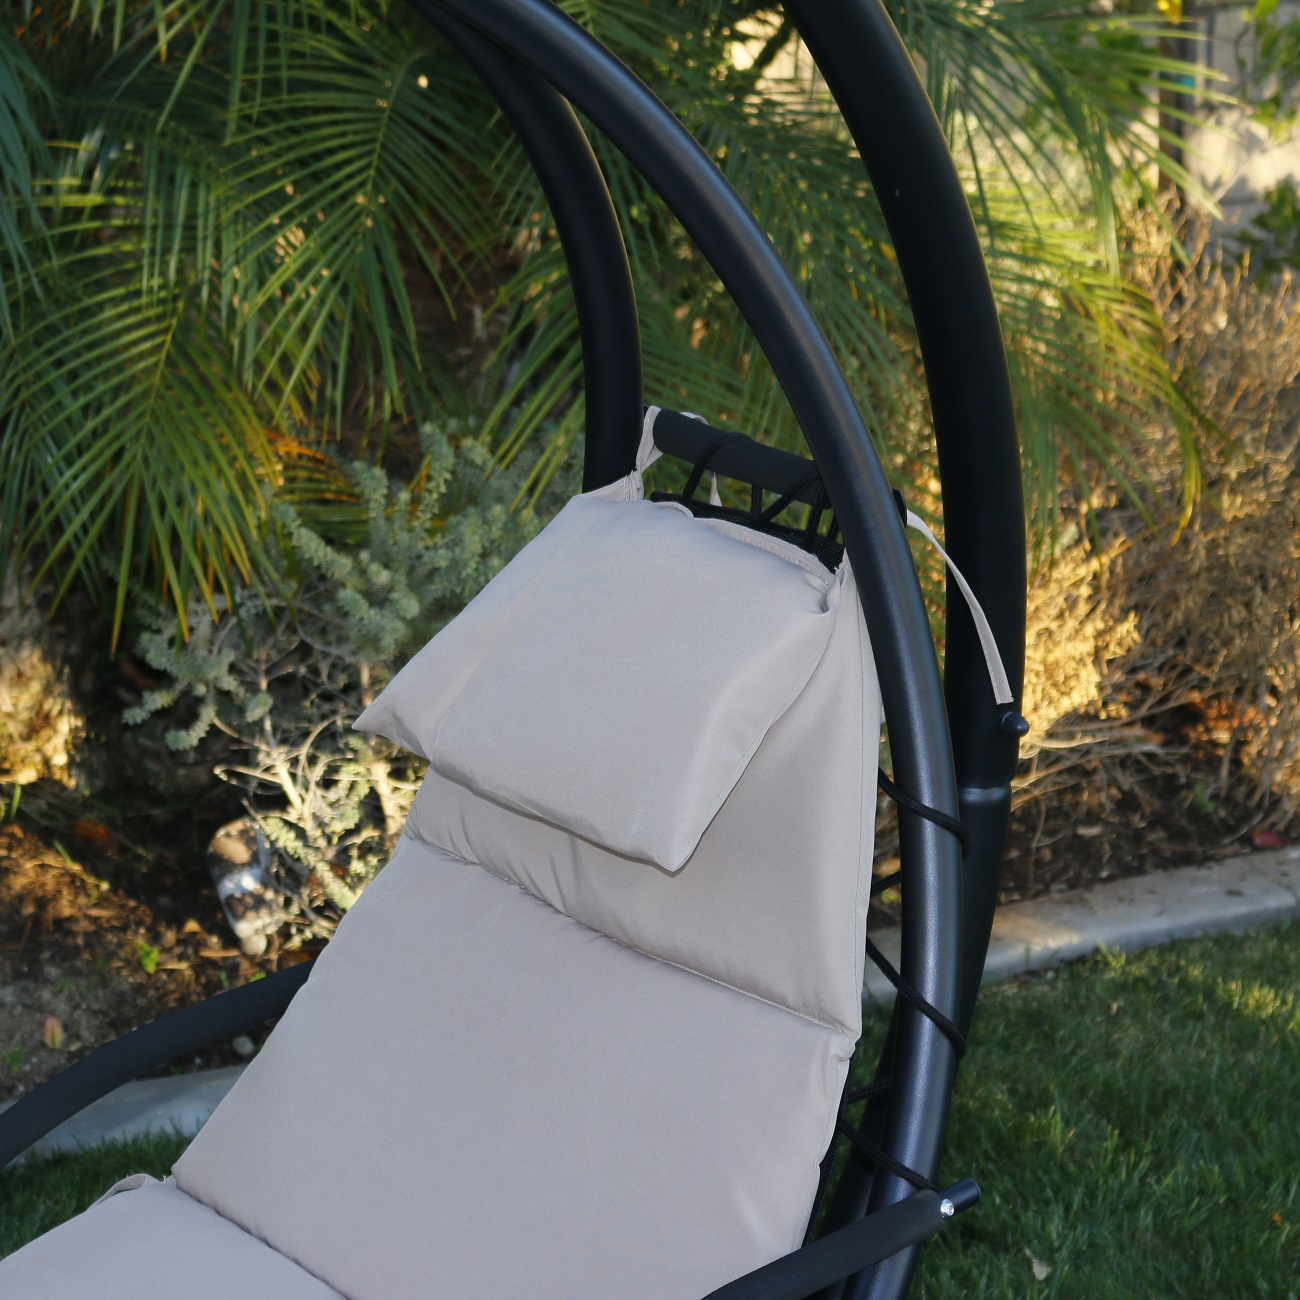 hanging chaise lounge chair hammock swing canopy glider  hanging chaise lounge chair hammock swing canopy glider outdoor      rh   ebay